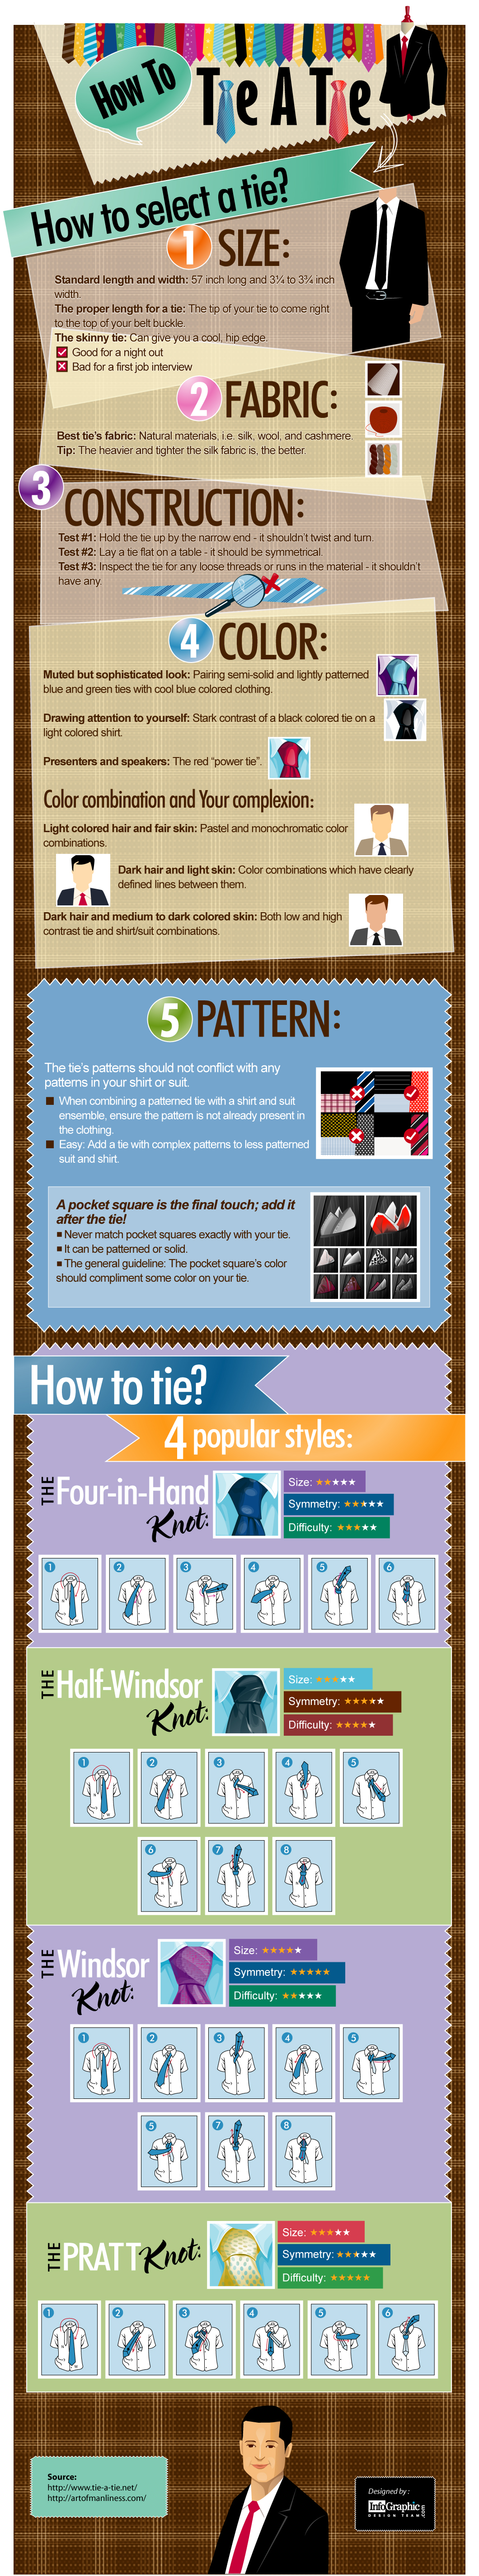 How to tie a tie - infographic